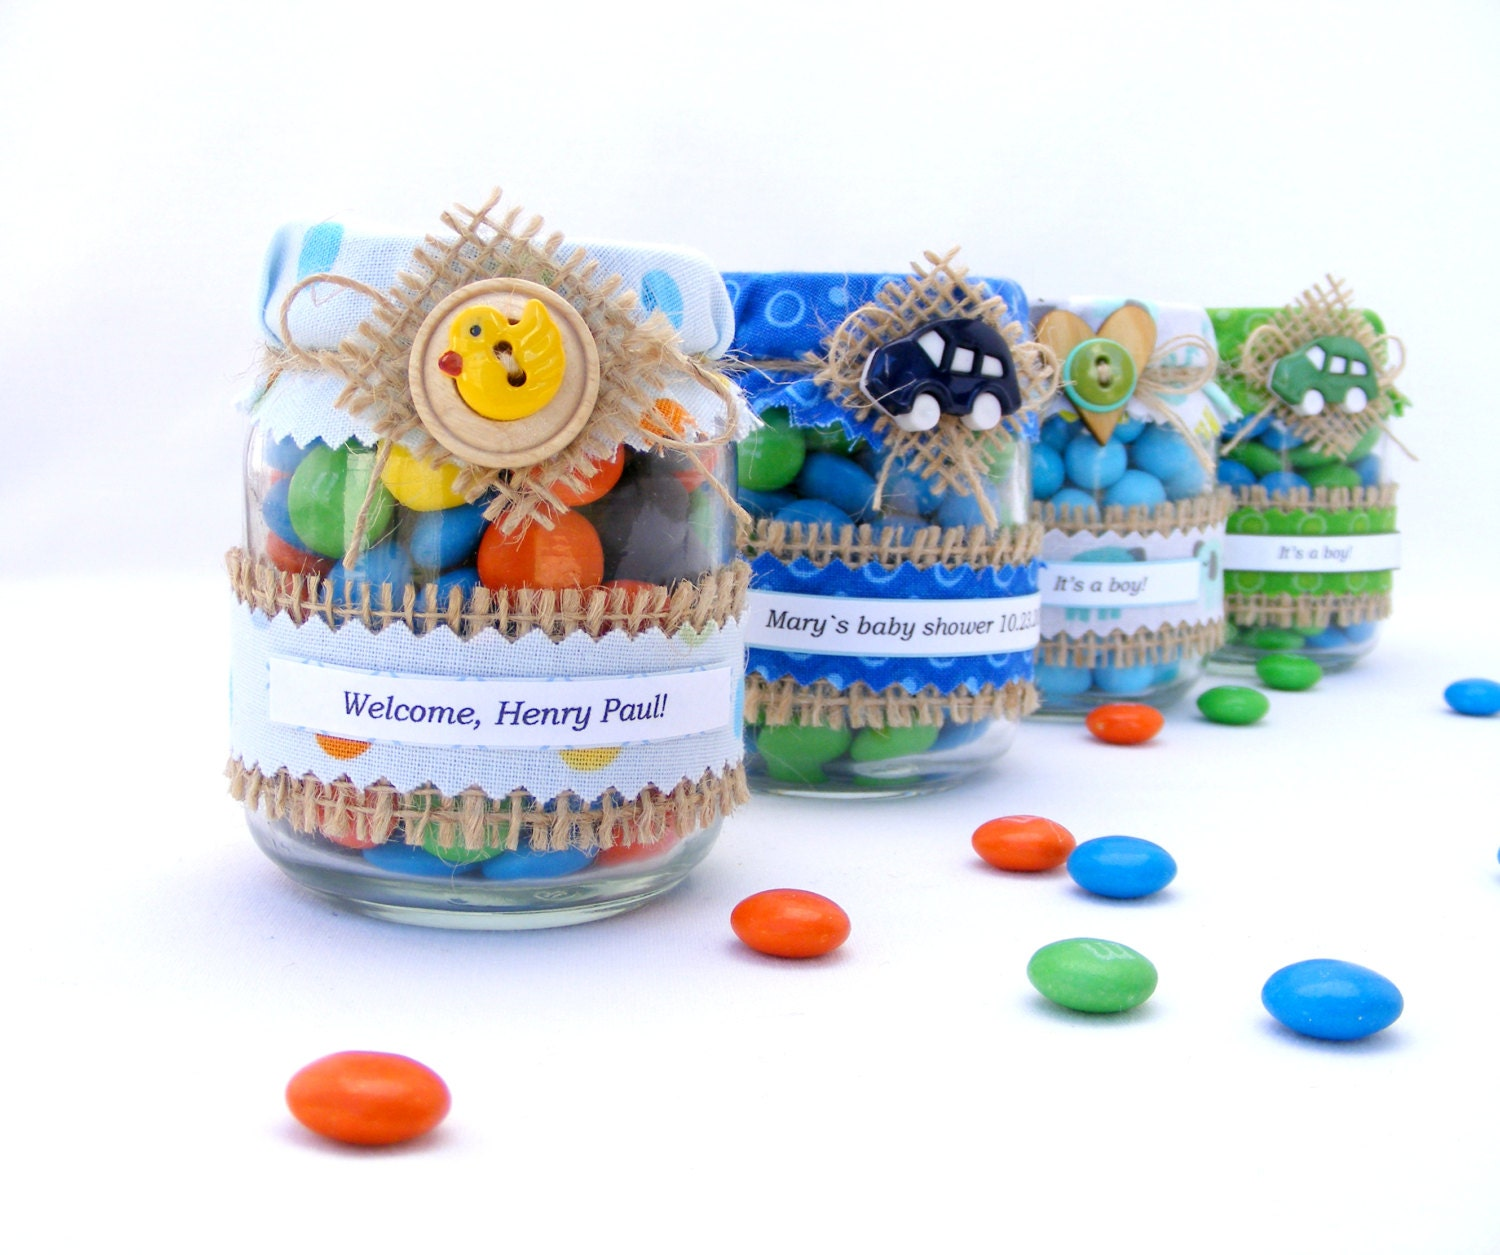 Baby shower favors in jar Rustic baby shower Edible birthday